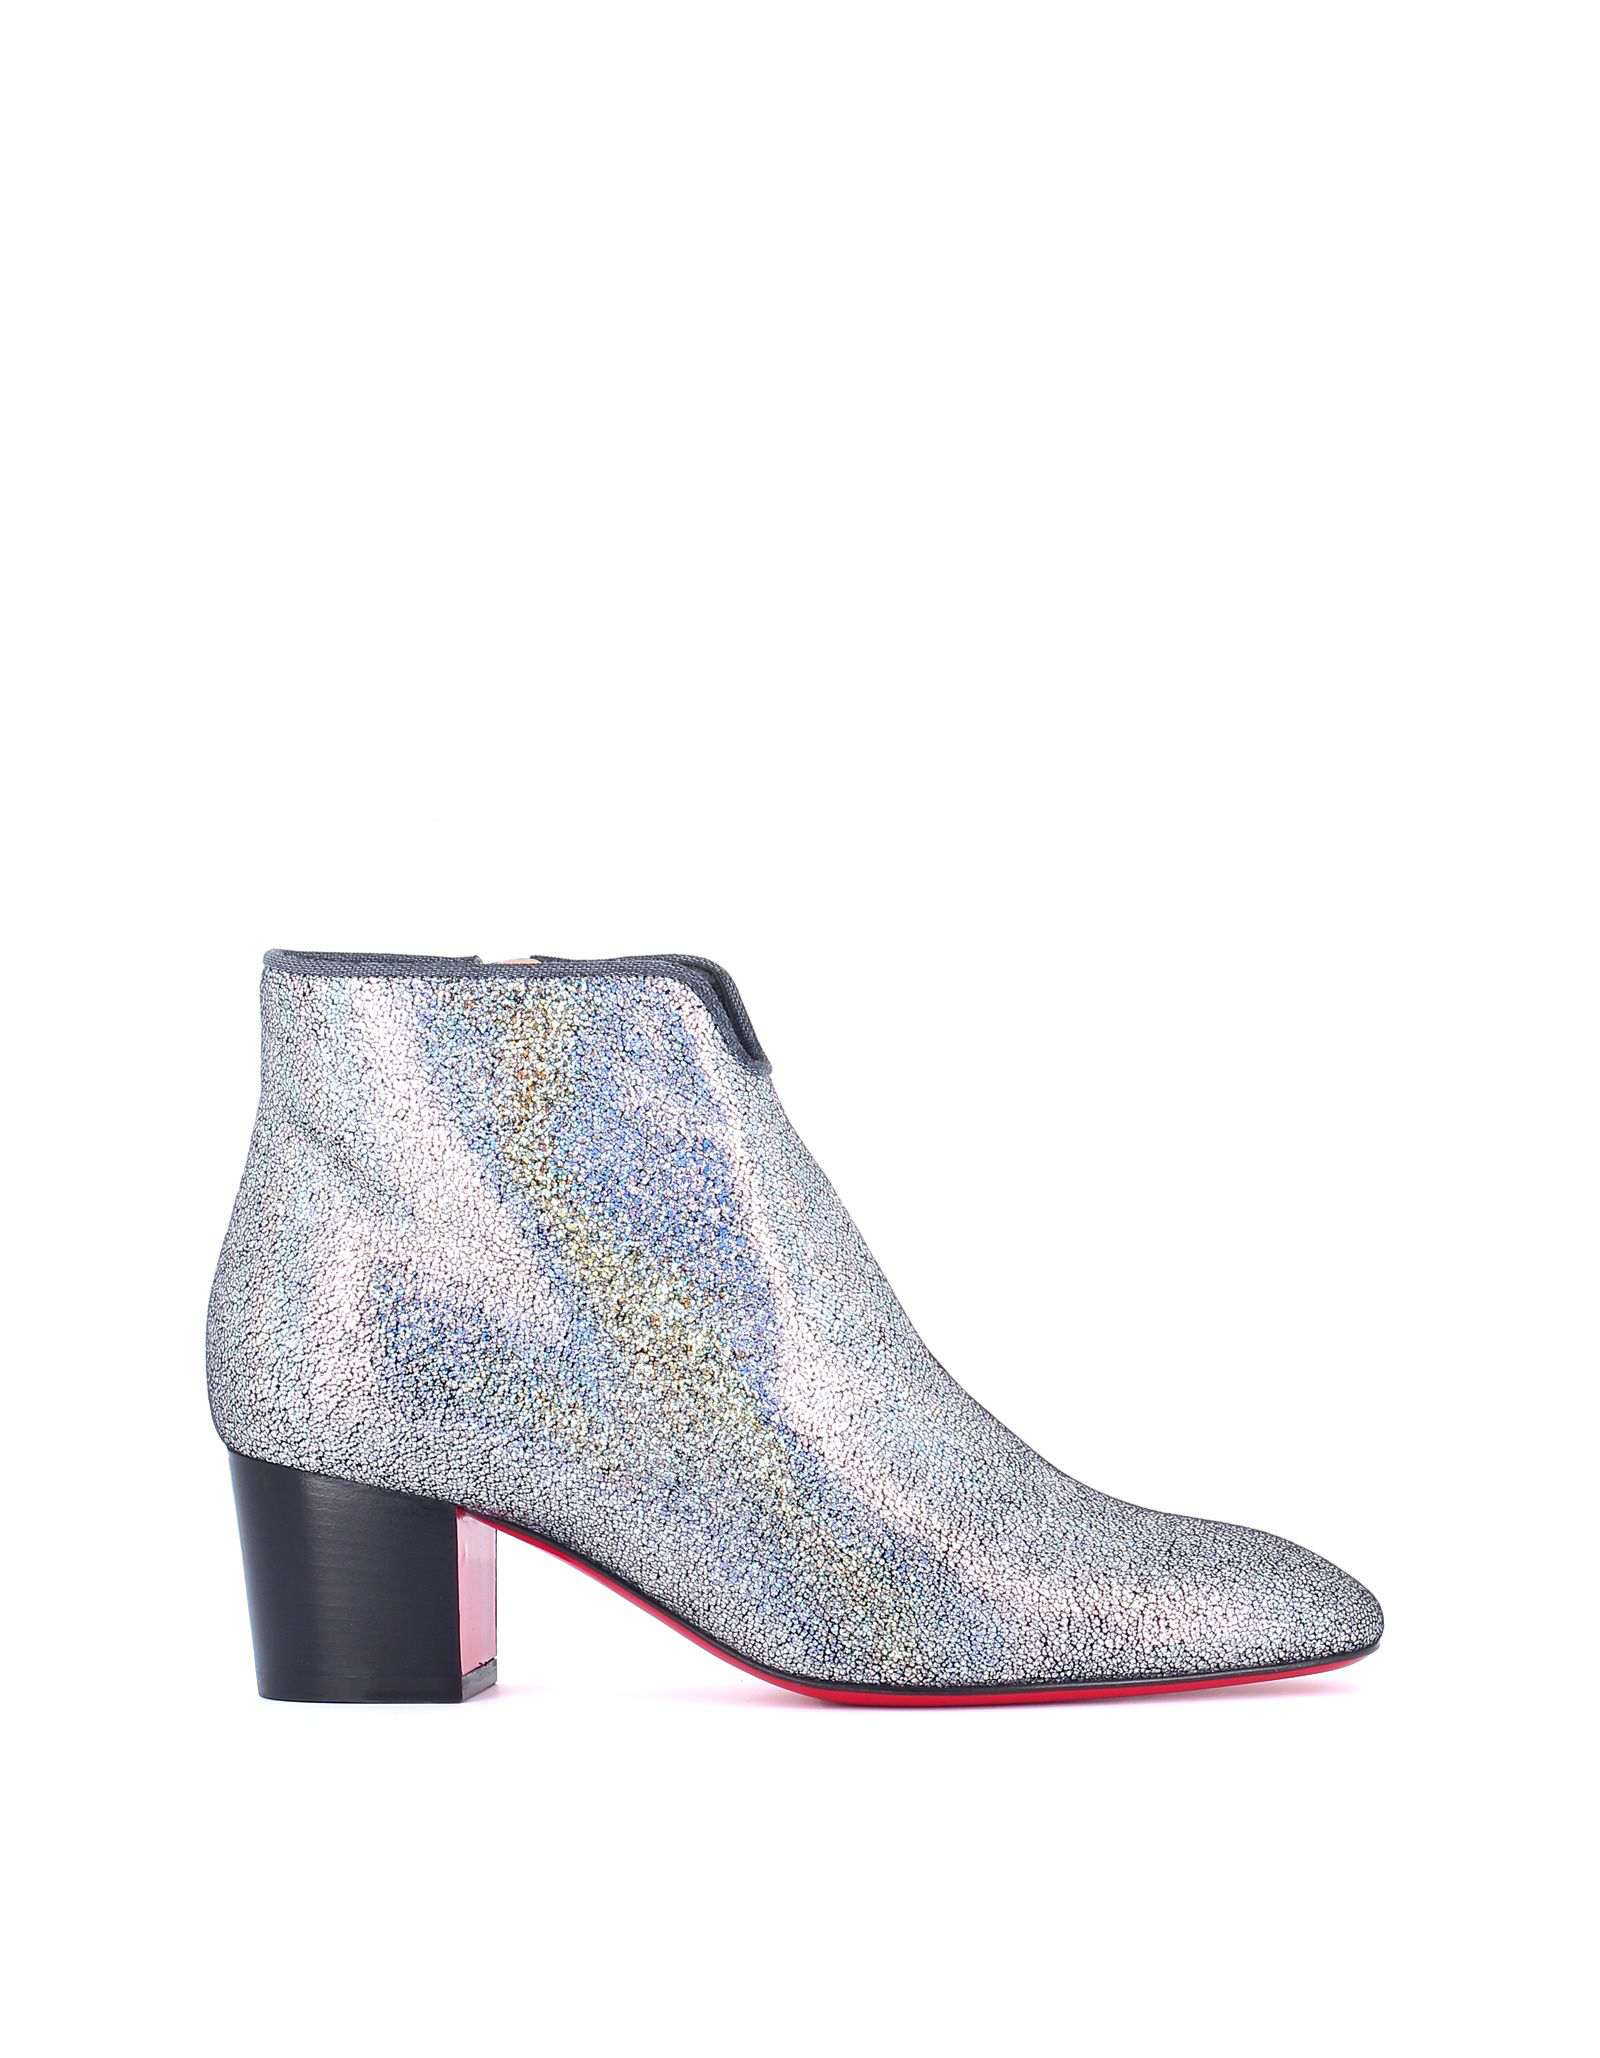 66c21b8cfc2a Christian Louboutin Disco 70S Low-Heel Glitter Red Sole Booties In Silver